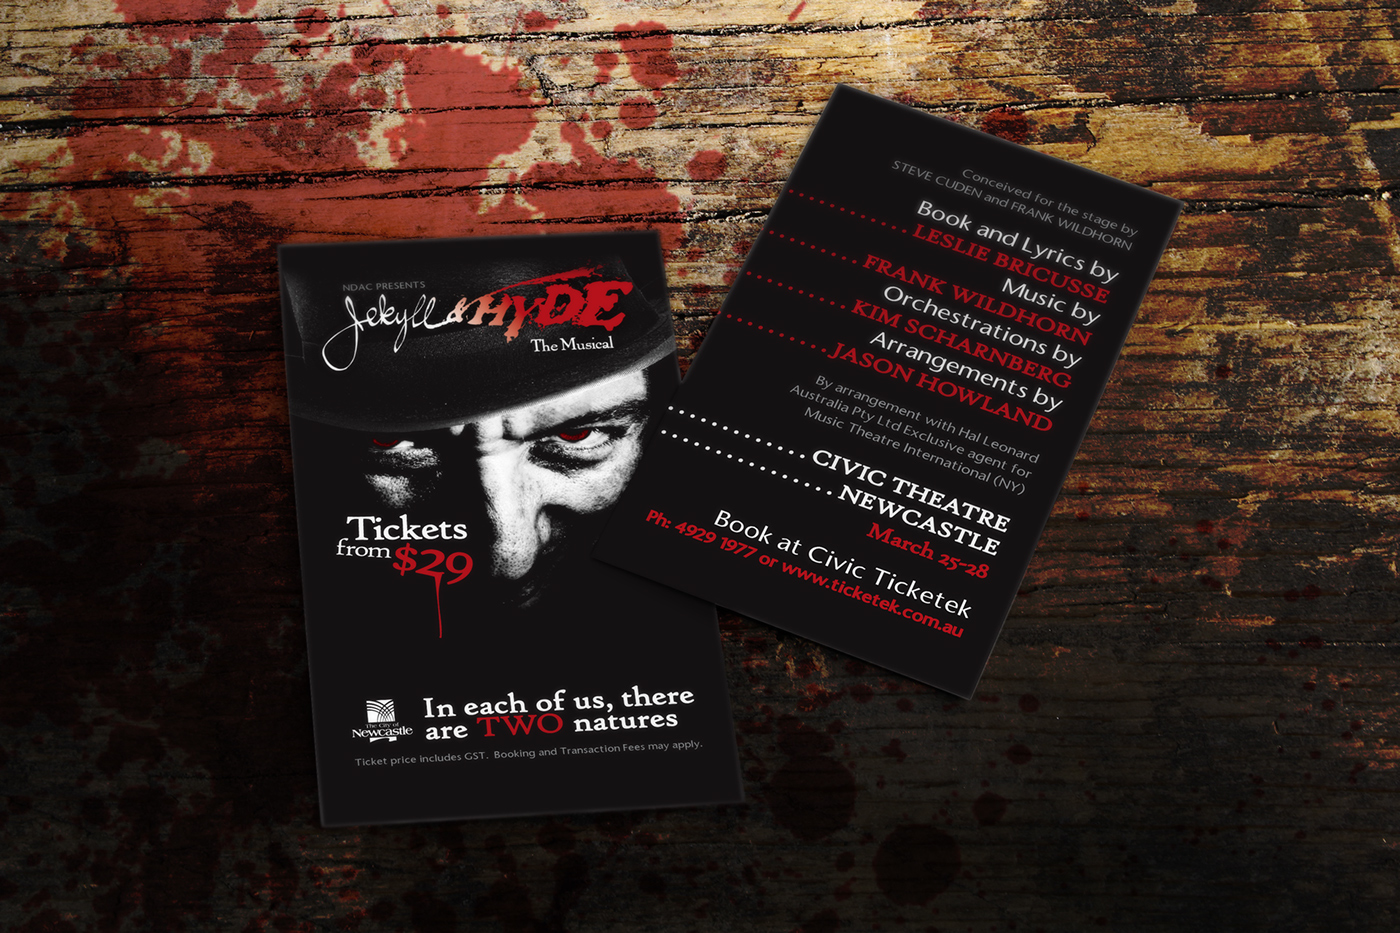 Jekyll & Hyde The Musical Business Cards for NDAC on Behance